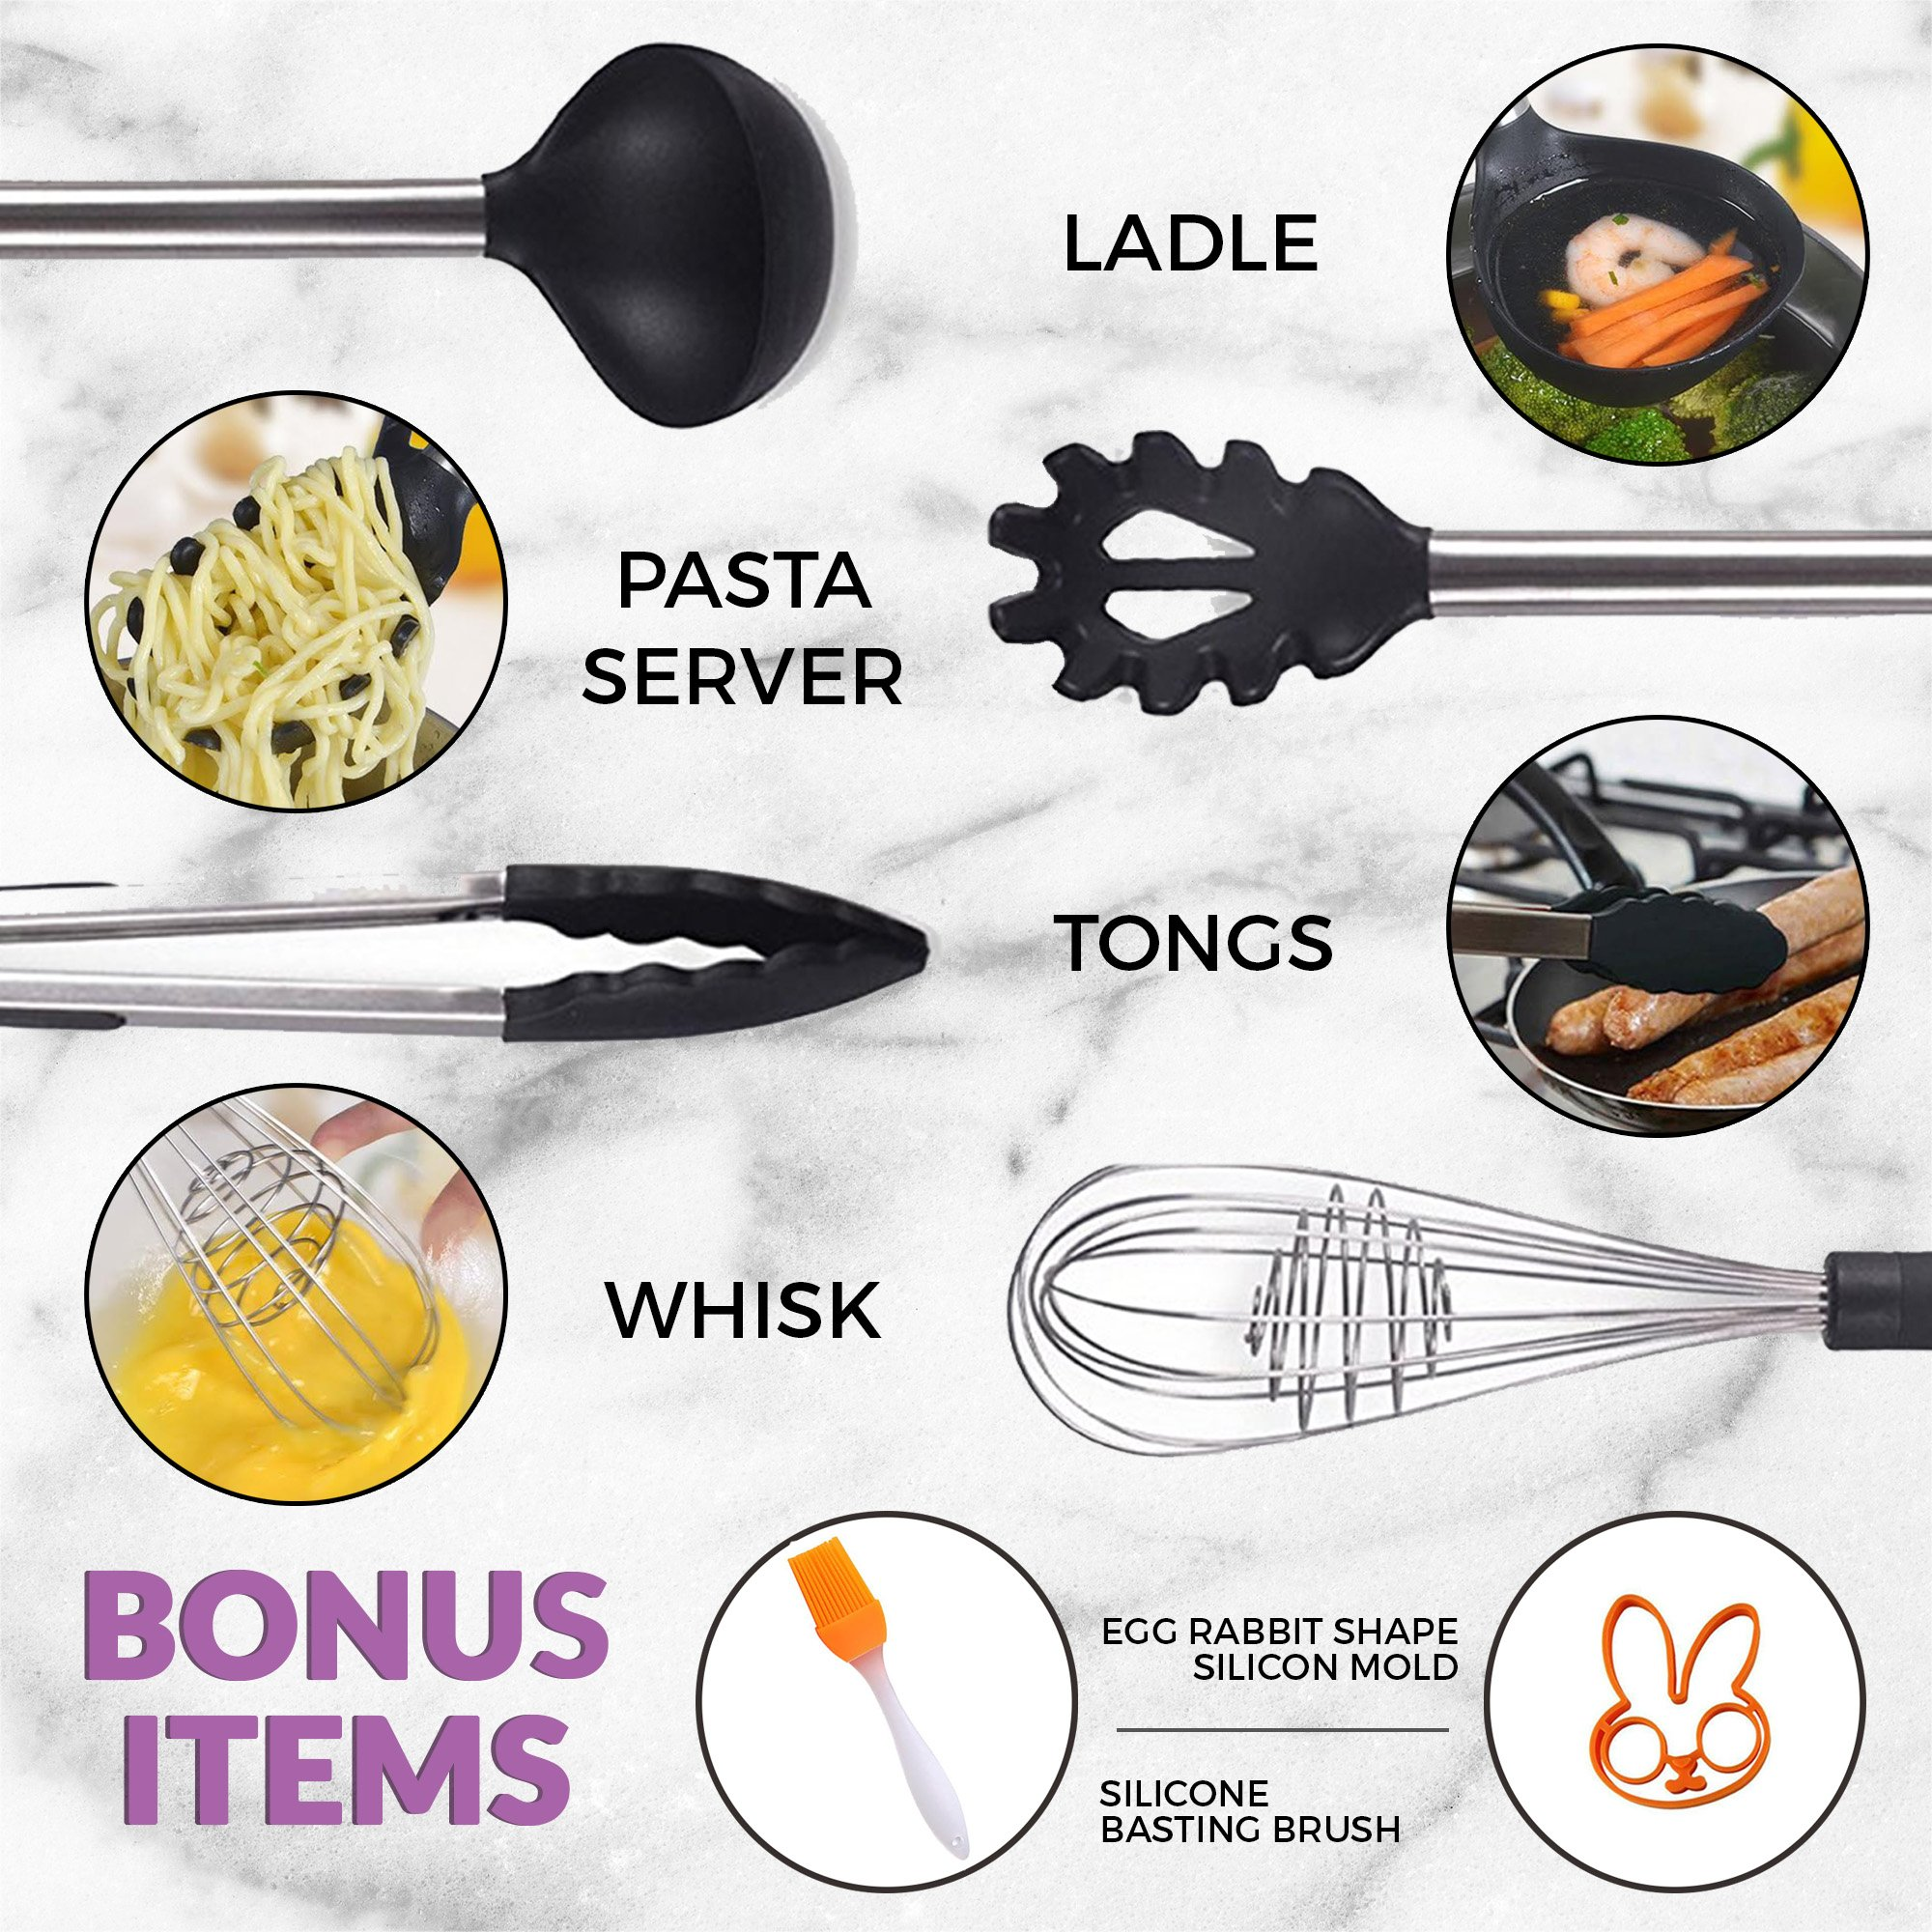 Kitchen Utensil 8 Set - Black Cooking Kit Manufactured with Metal Heavy Duty Stainless Steel and No Plastic BPA Free High Heat Resistant Silicone - Dishwasher Safe Utensils with Waterproof Handles by Black Belt Kitchen (Image #9)